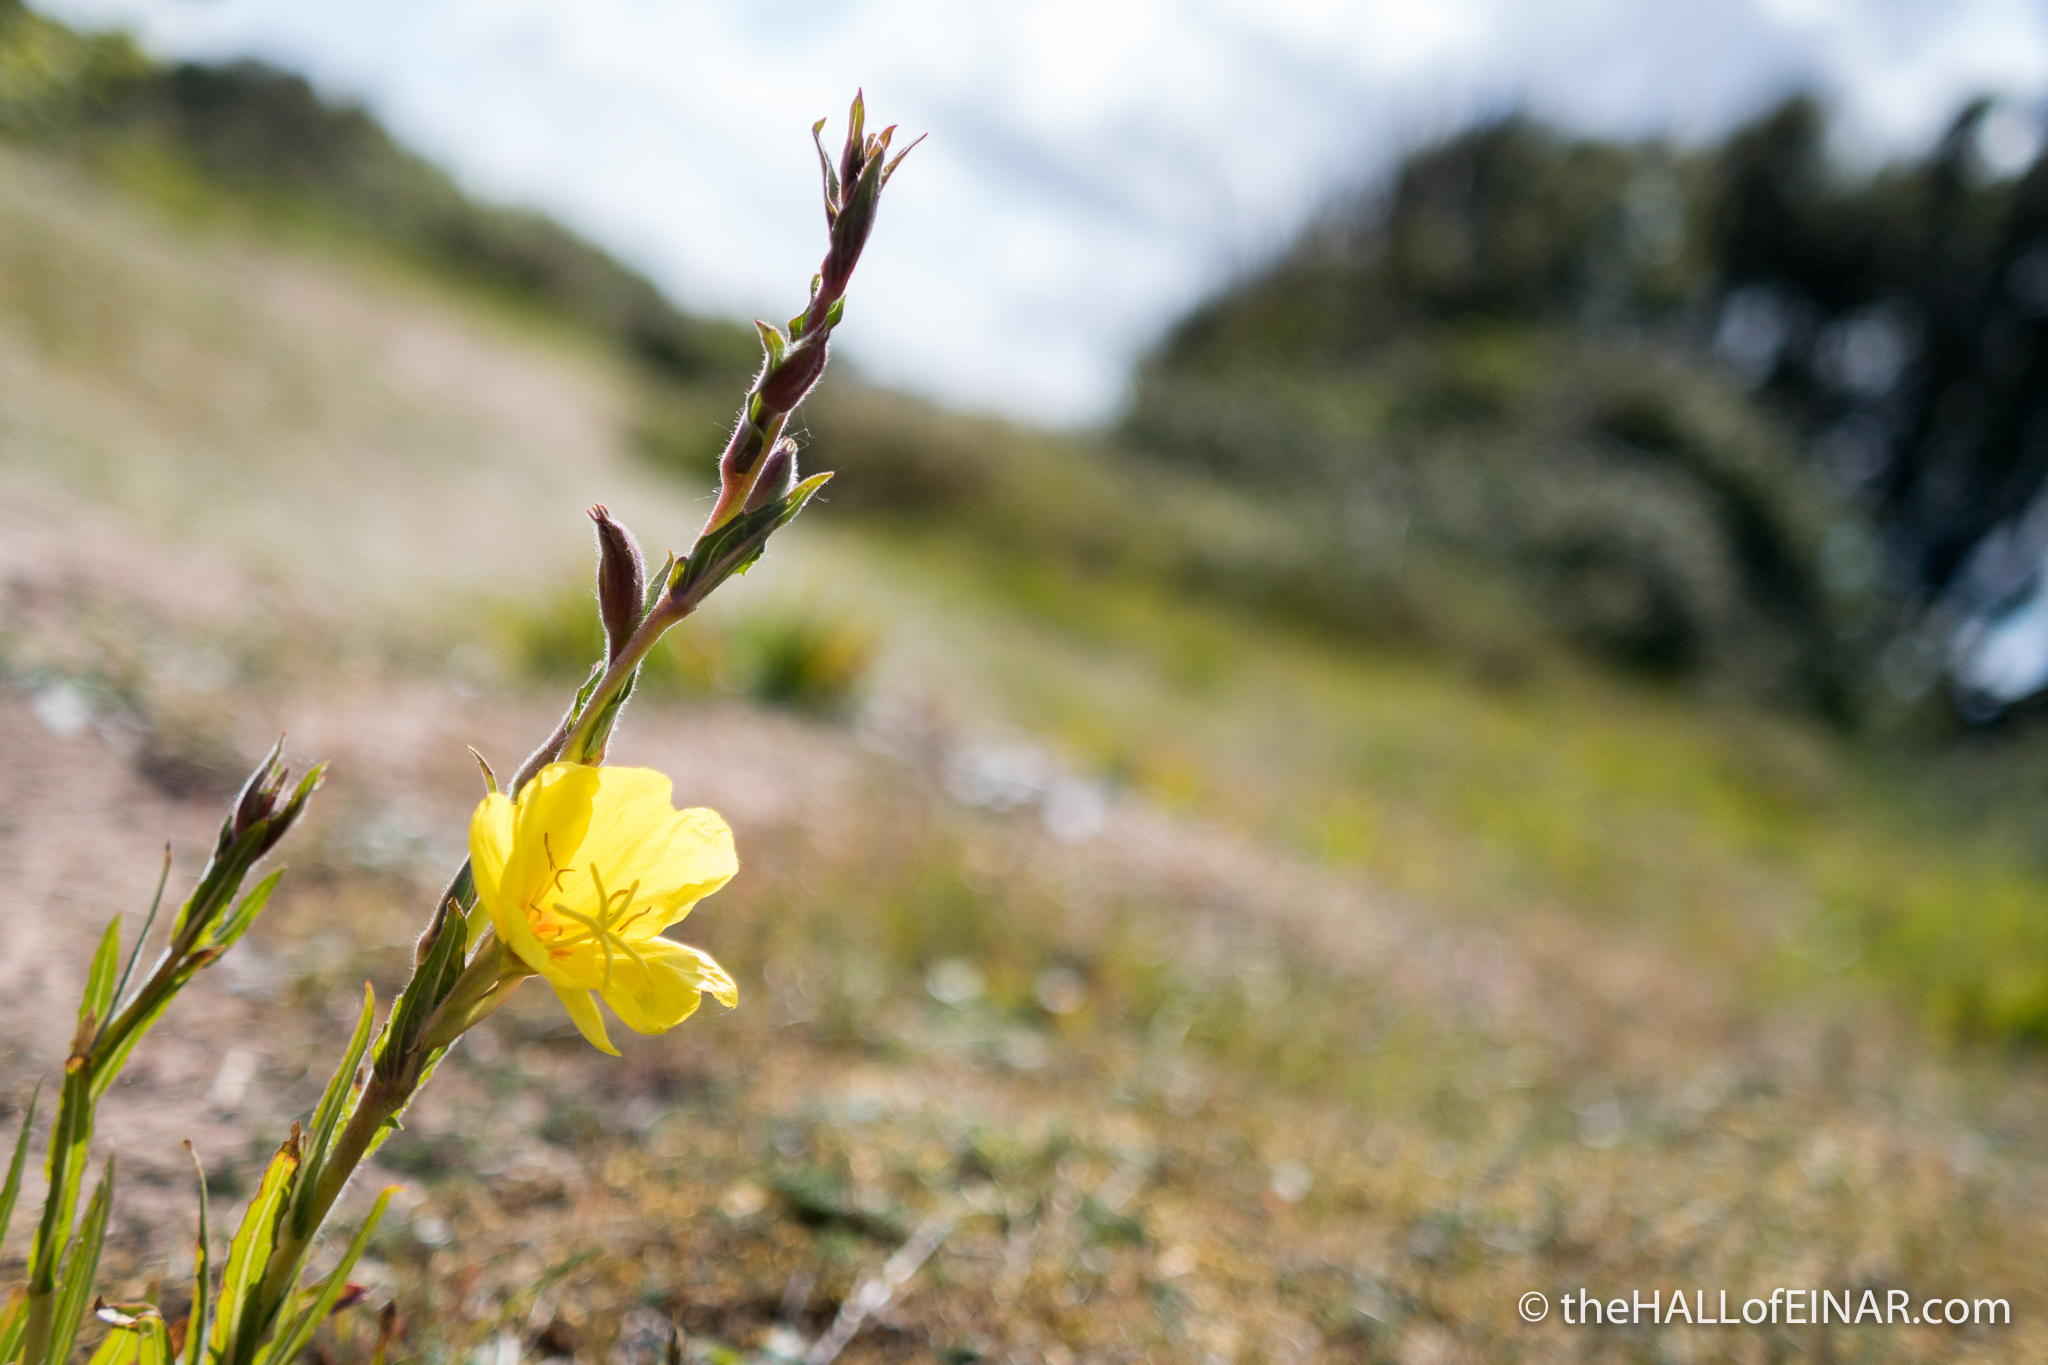 Evening Primrose - The Hall of Einar - photograph (c) David Bailey (not the)